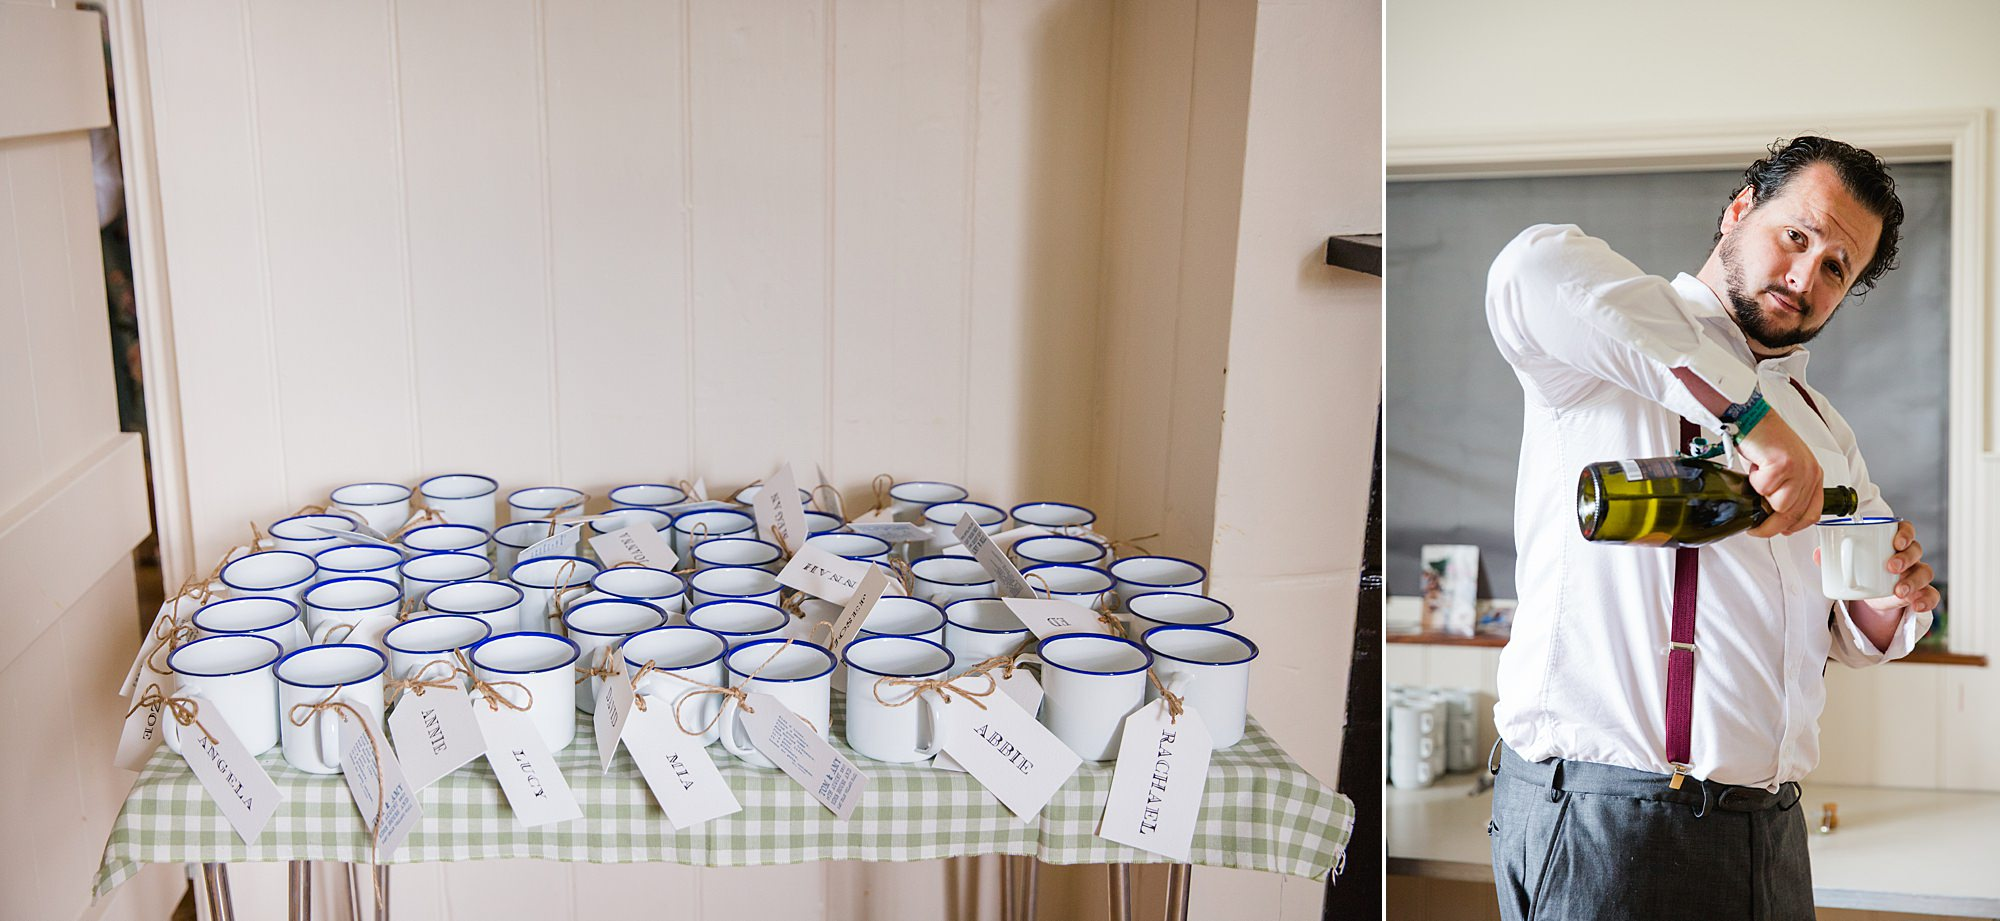 Fun village hall wedding personalised mugs for prosecco